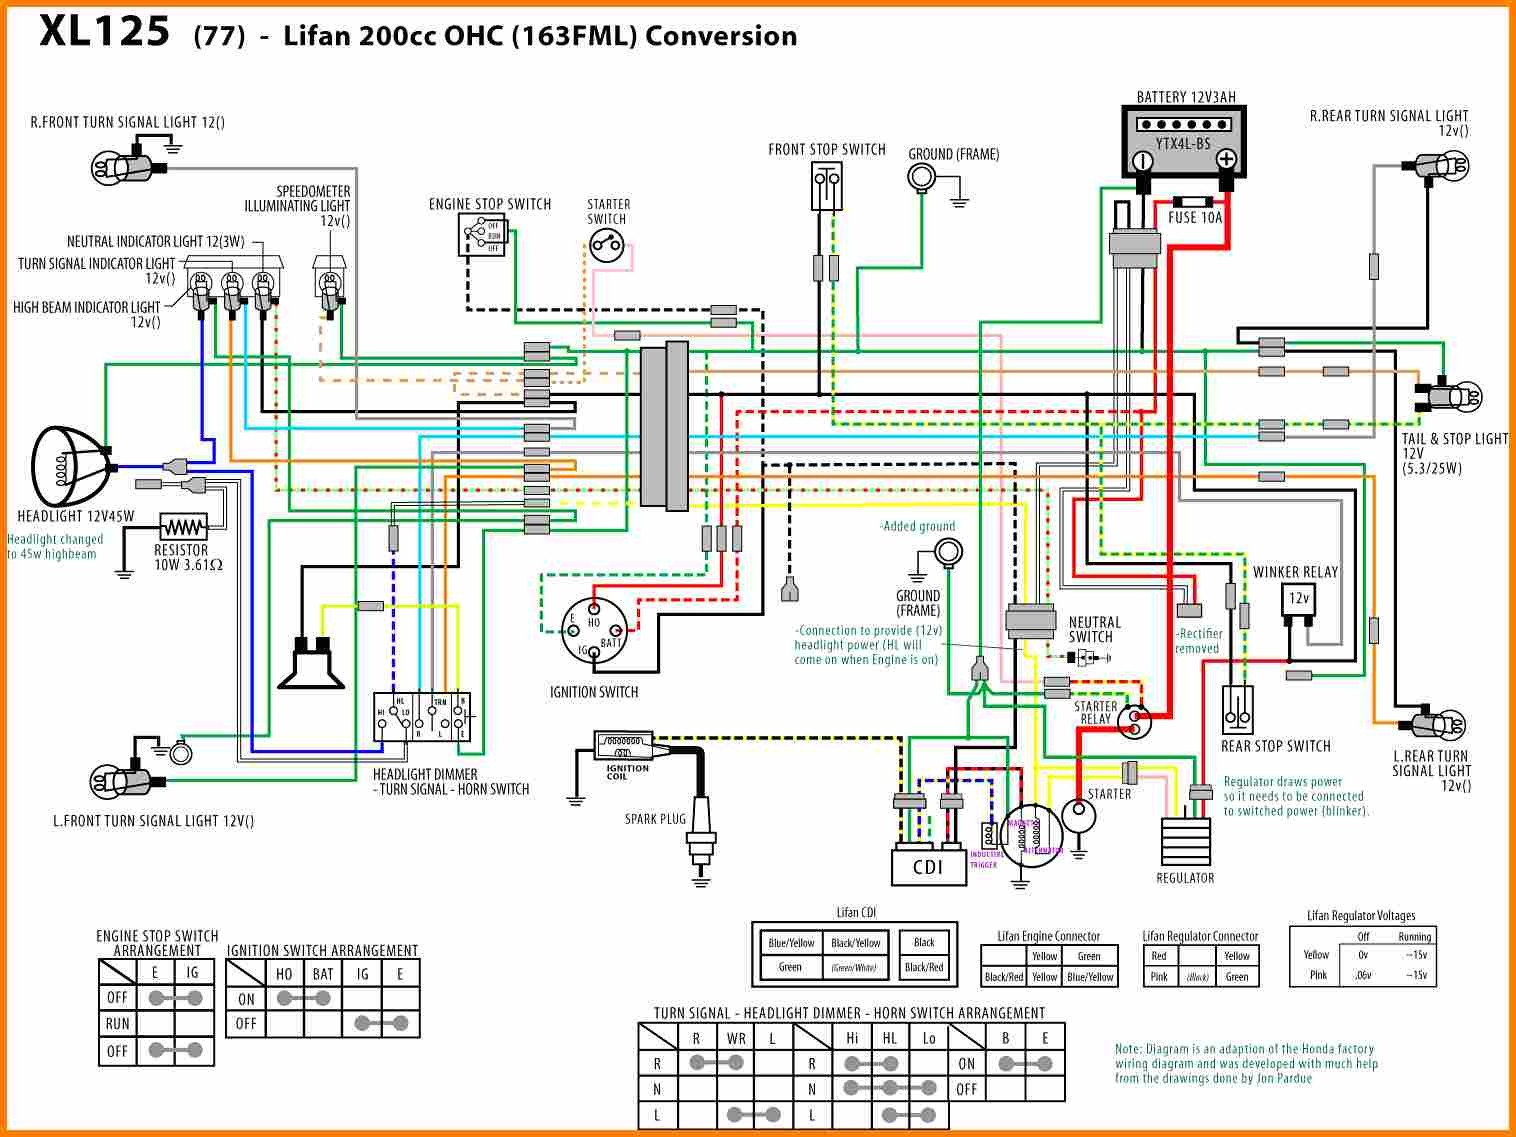 125cc motorcycle wiring diagram wiring library Tao Tao 125 ATV Wiring Diagram 125cc motorcycle wiring diagram